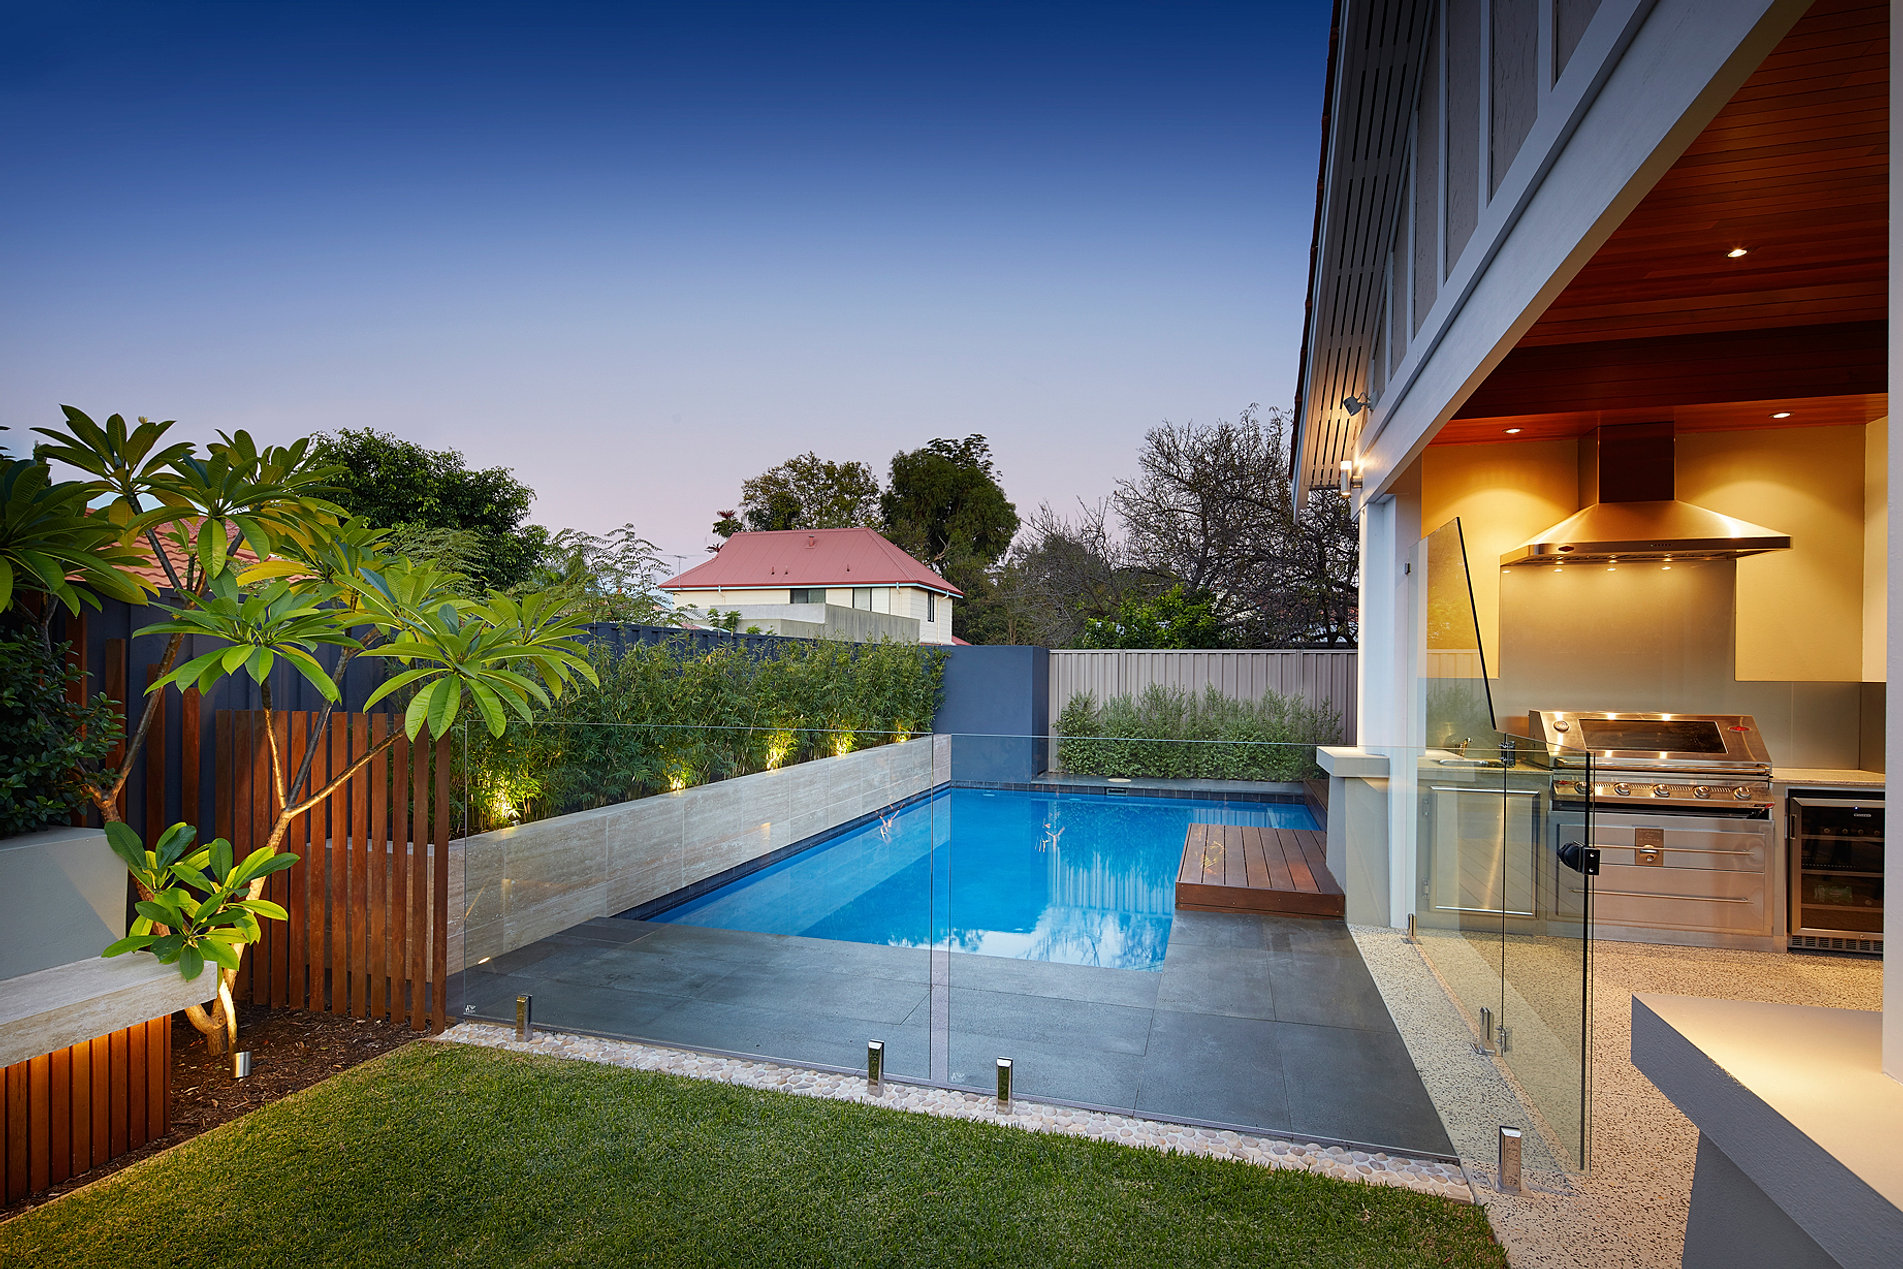 Principal pools landscapes lanscape design perth for Swimming pool landscaping ideas